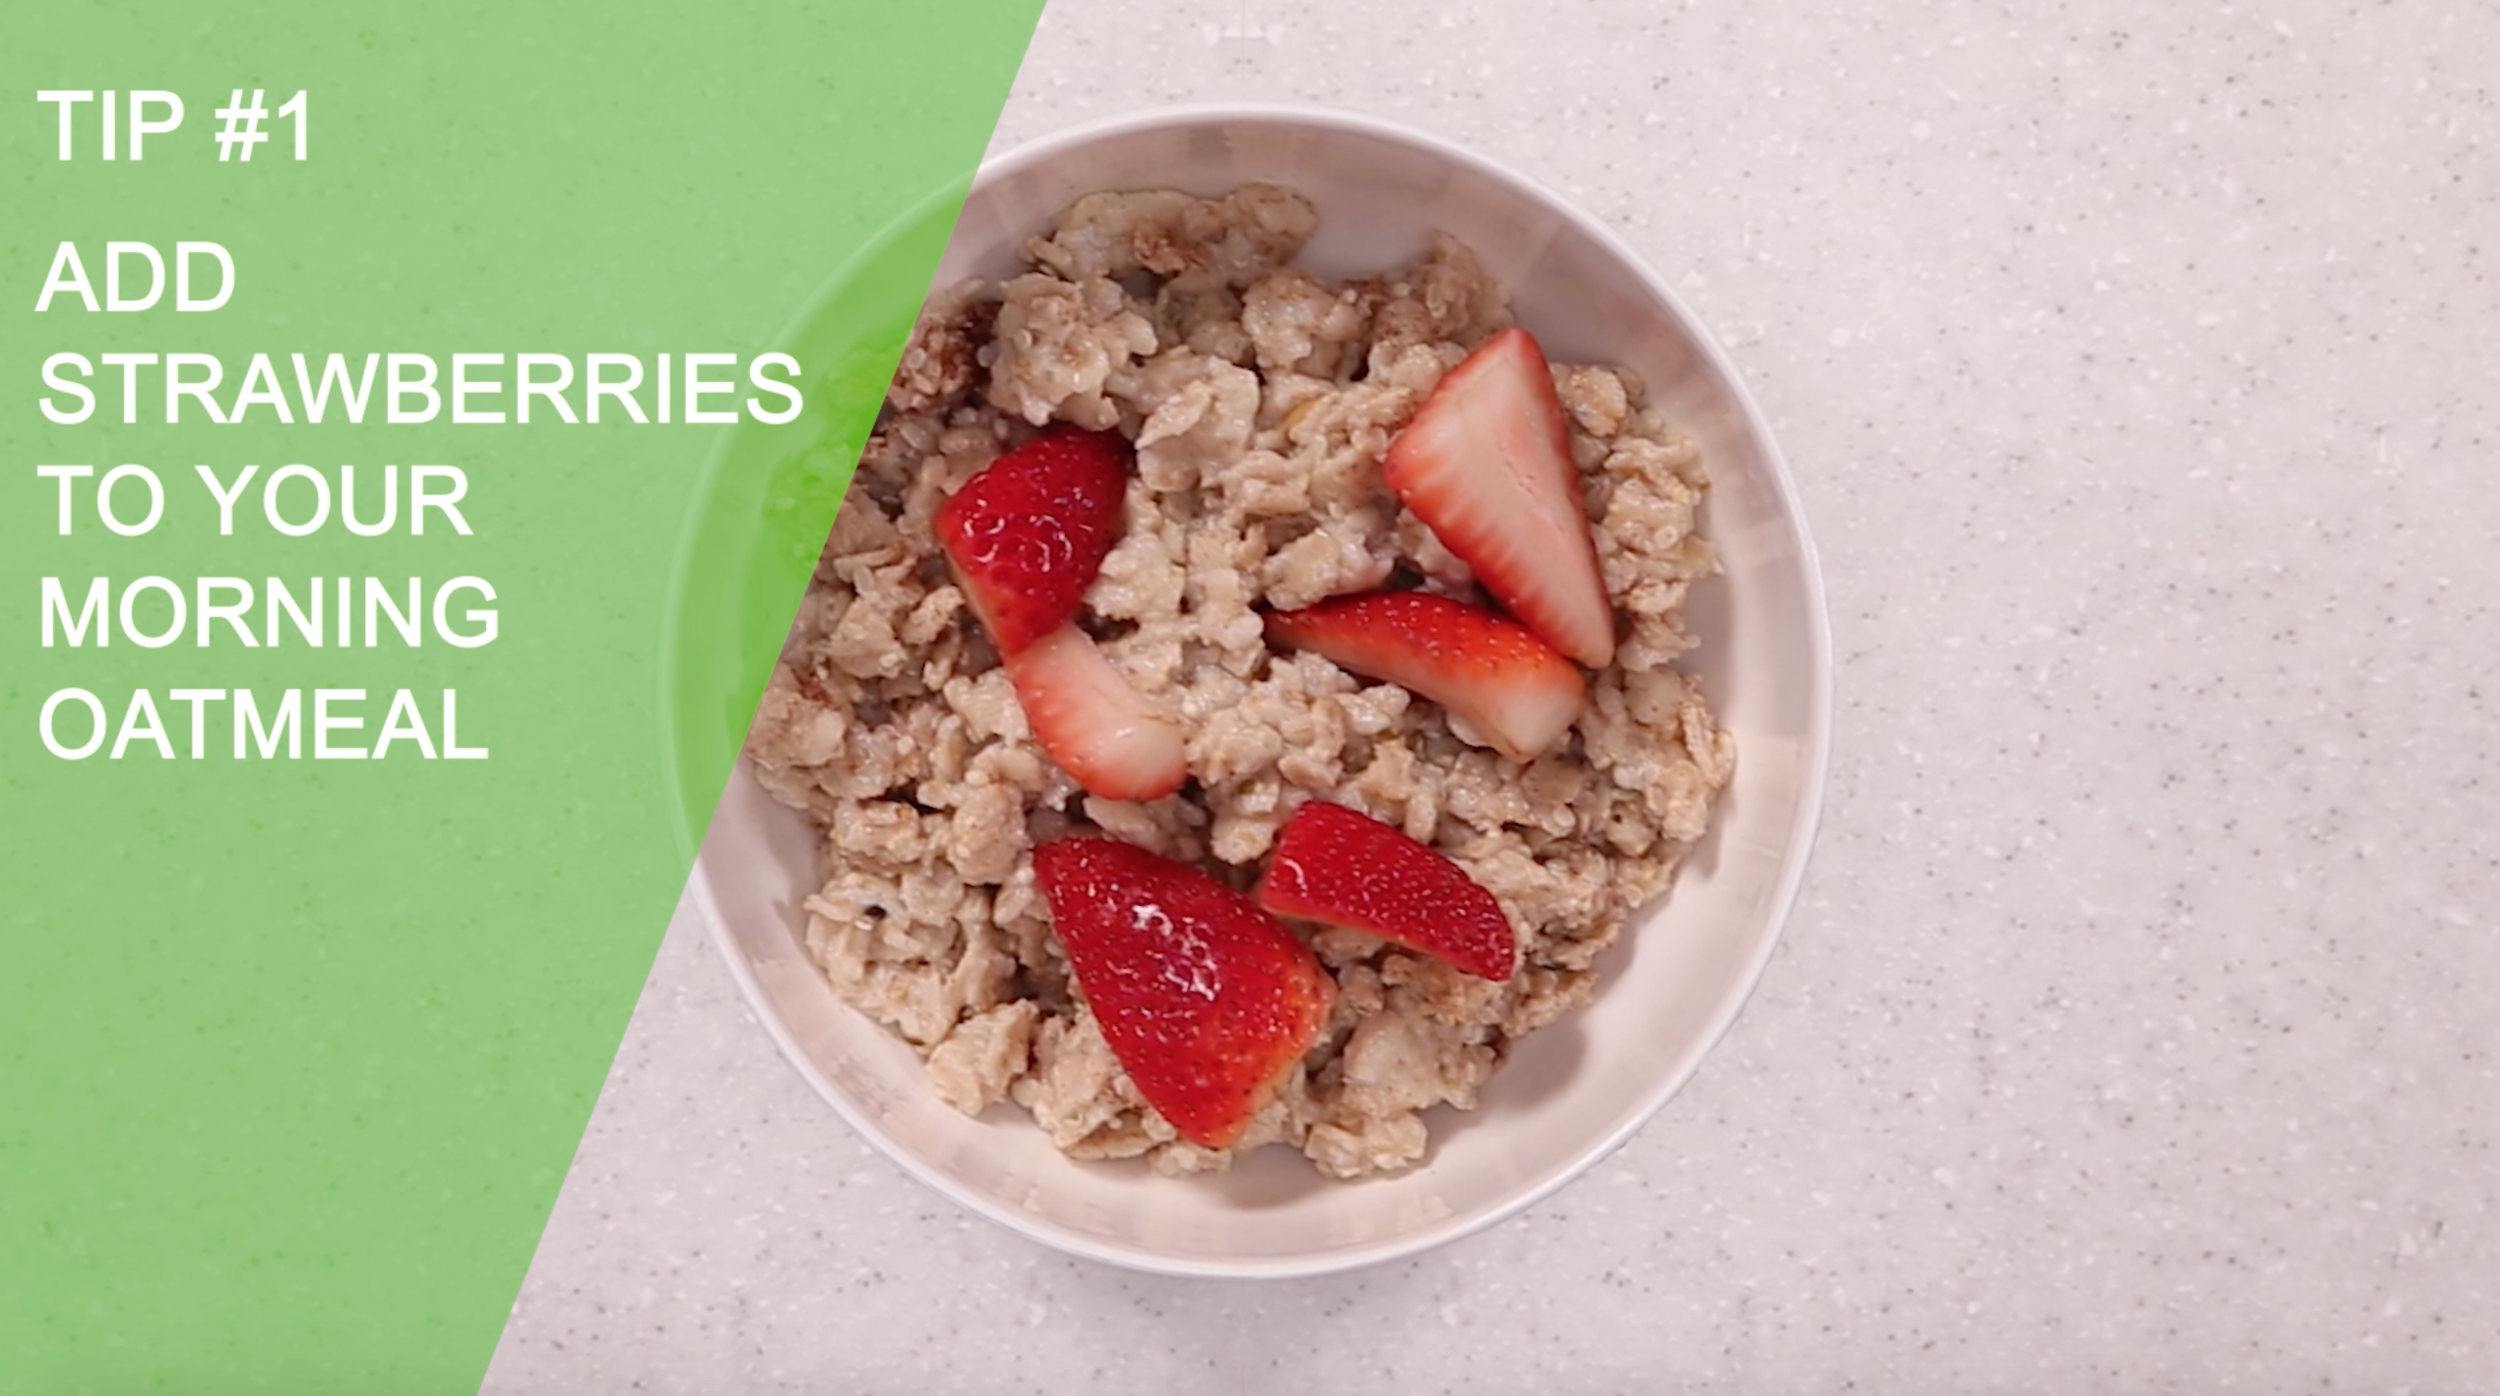 Add Strawberries On Oatmeal | Easy Healthy Creative Ways to Eat Strawberries | YES! Nutrition, LLC